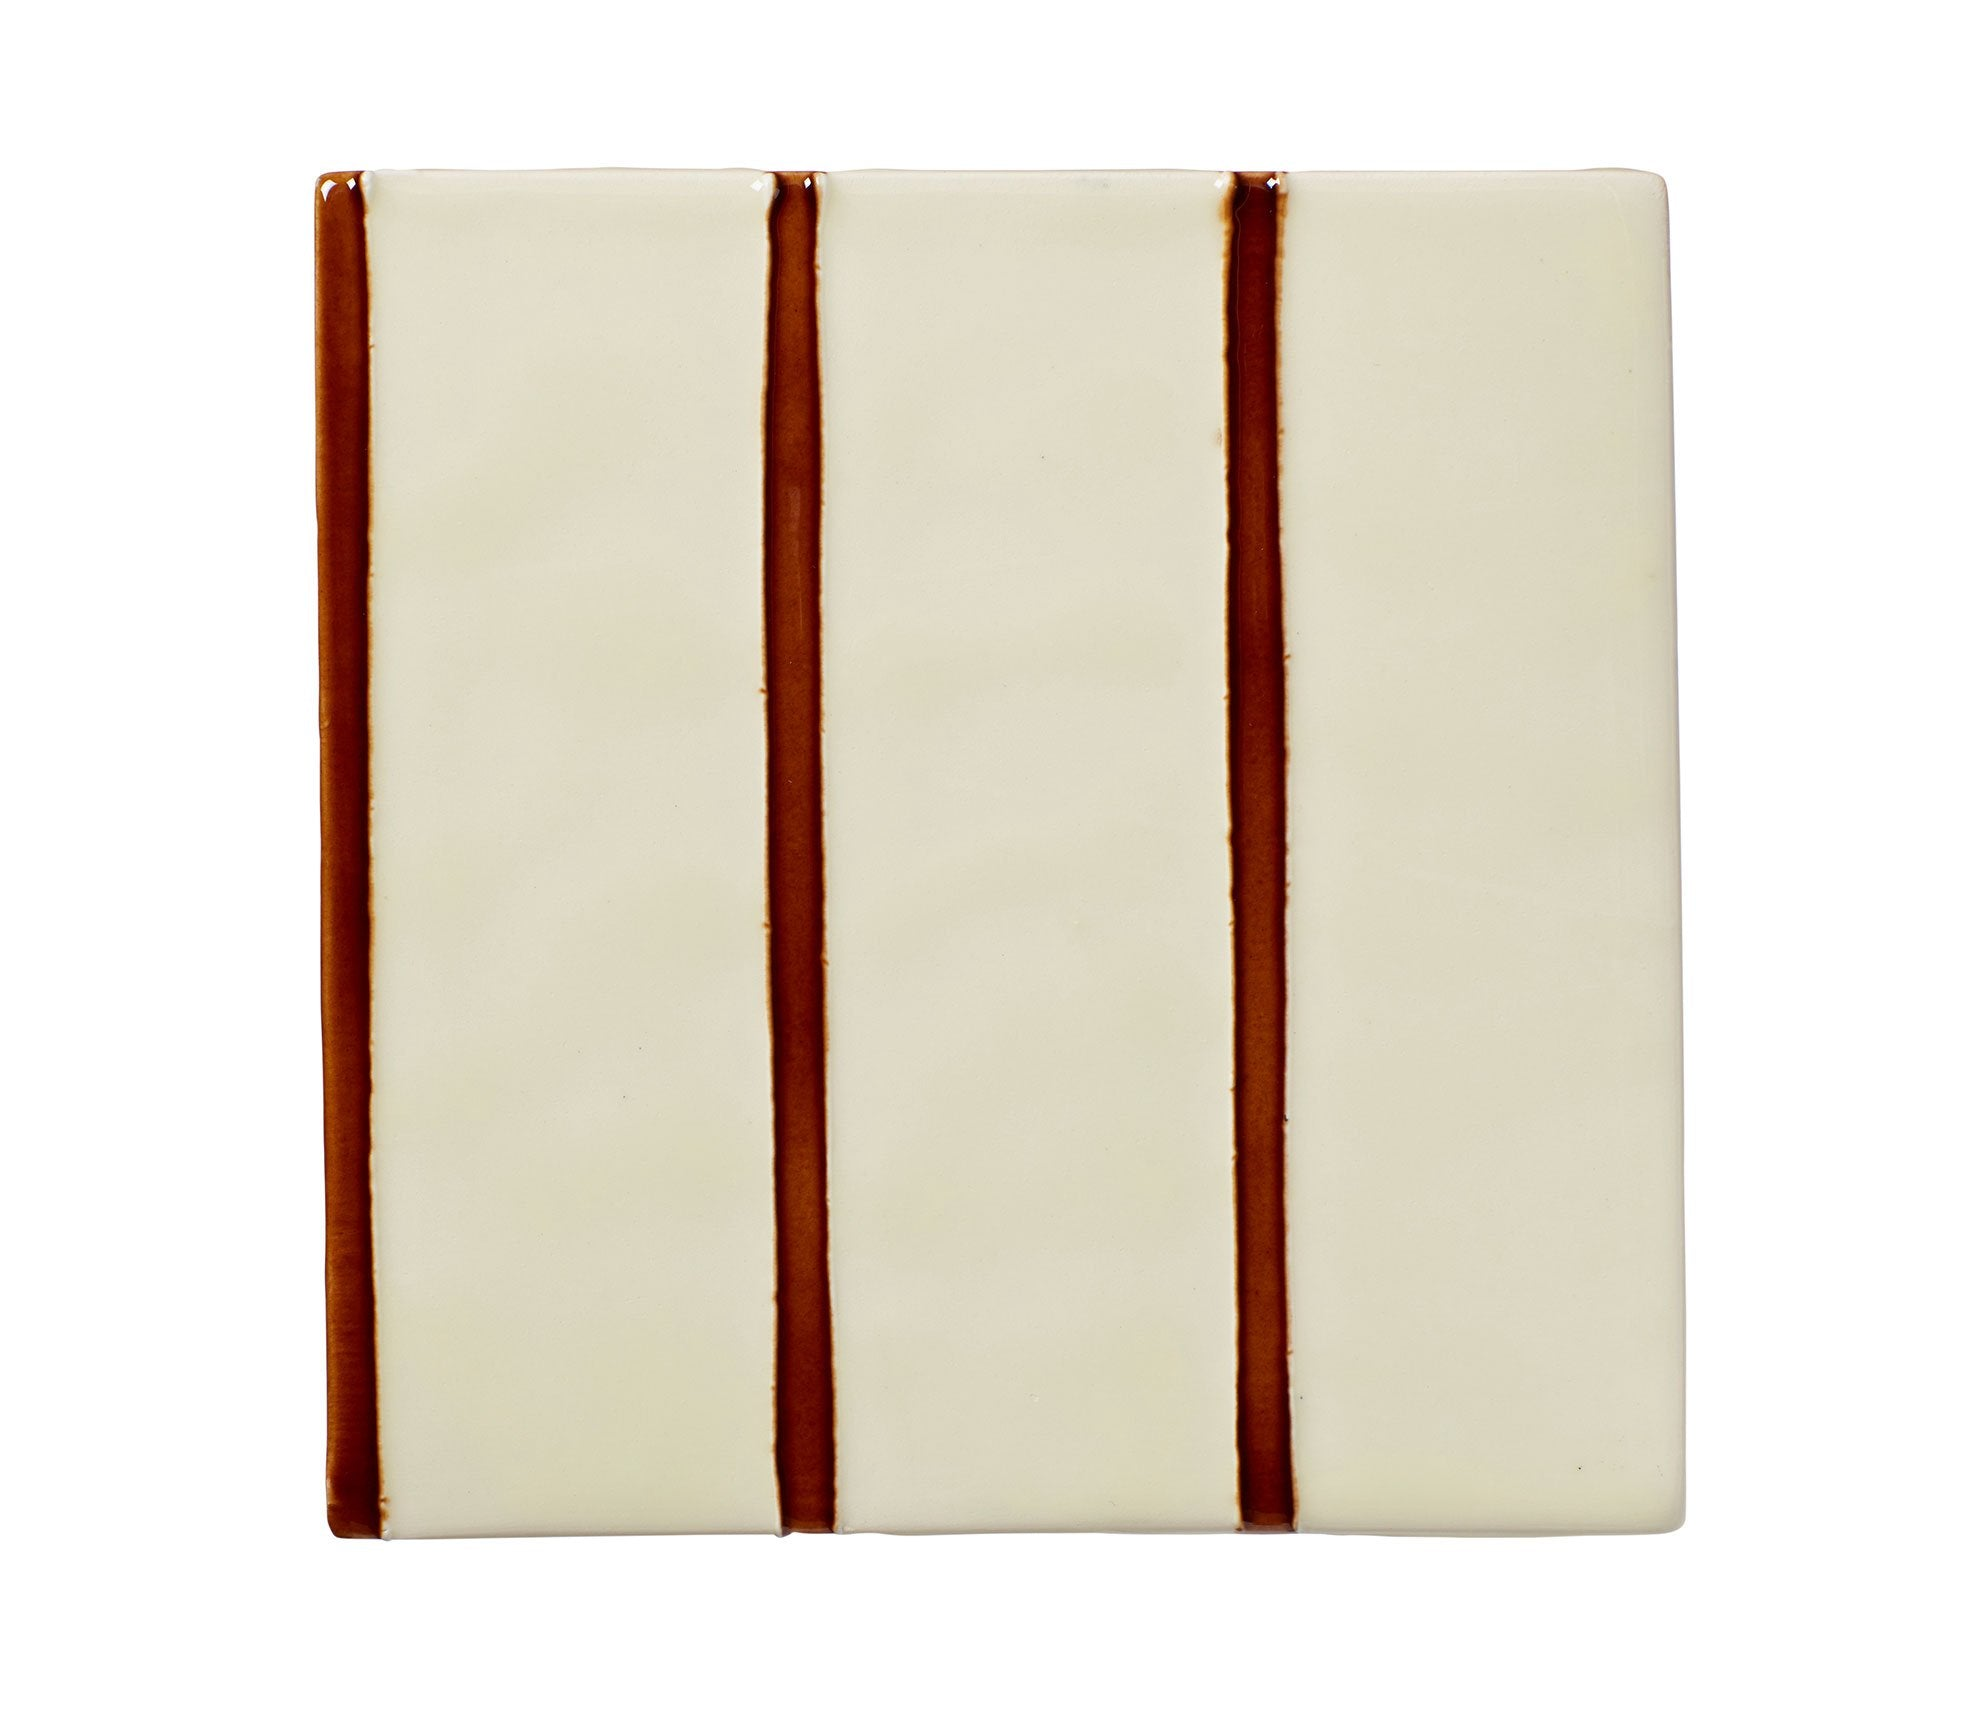 Hanley Tube Lined Decorative Tiles Product Image 5